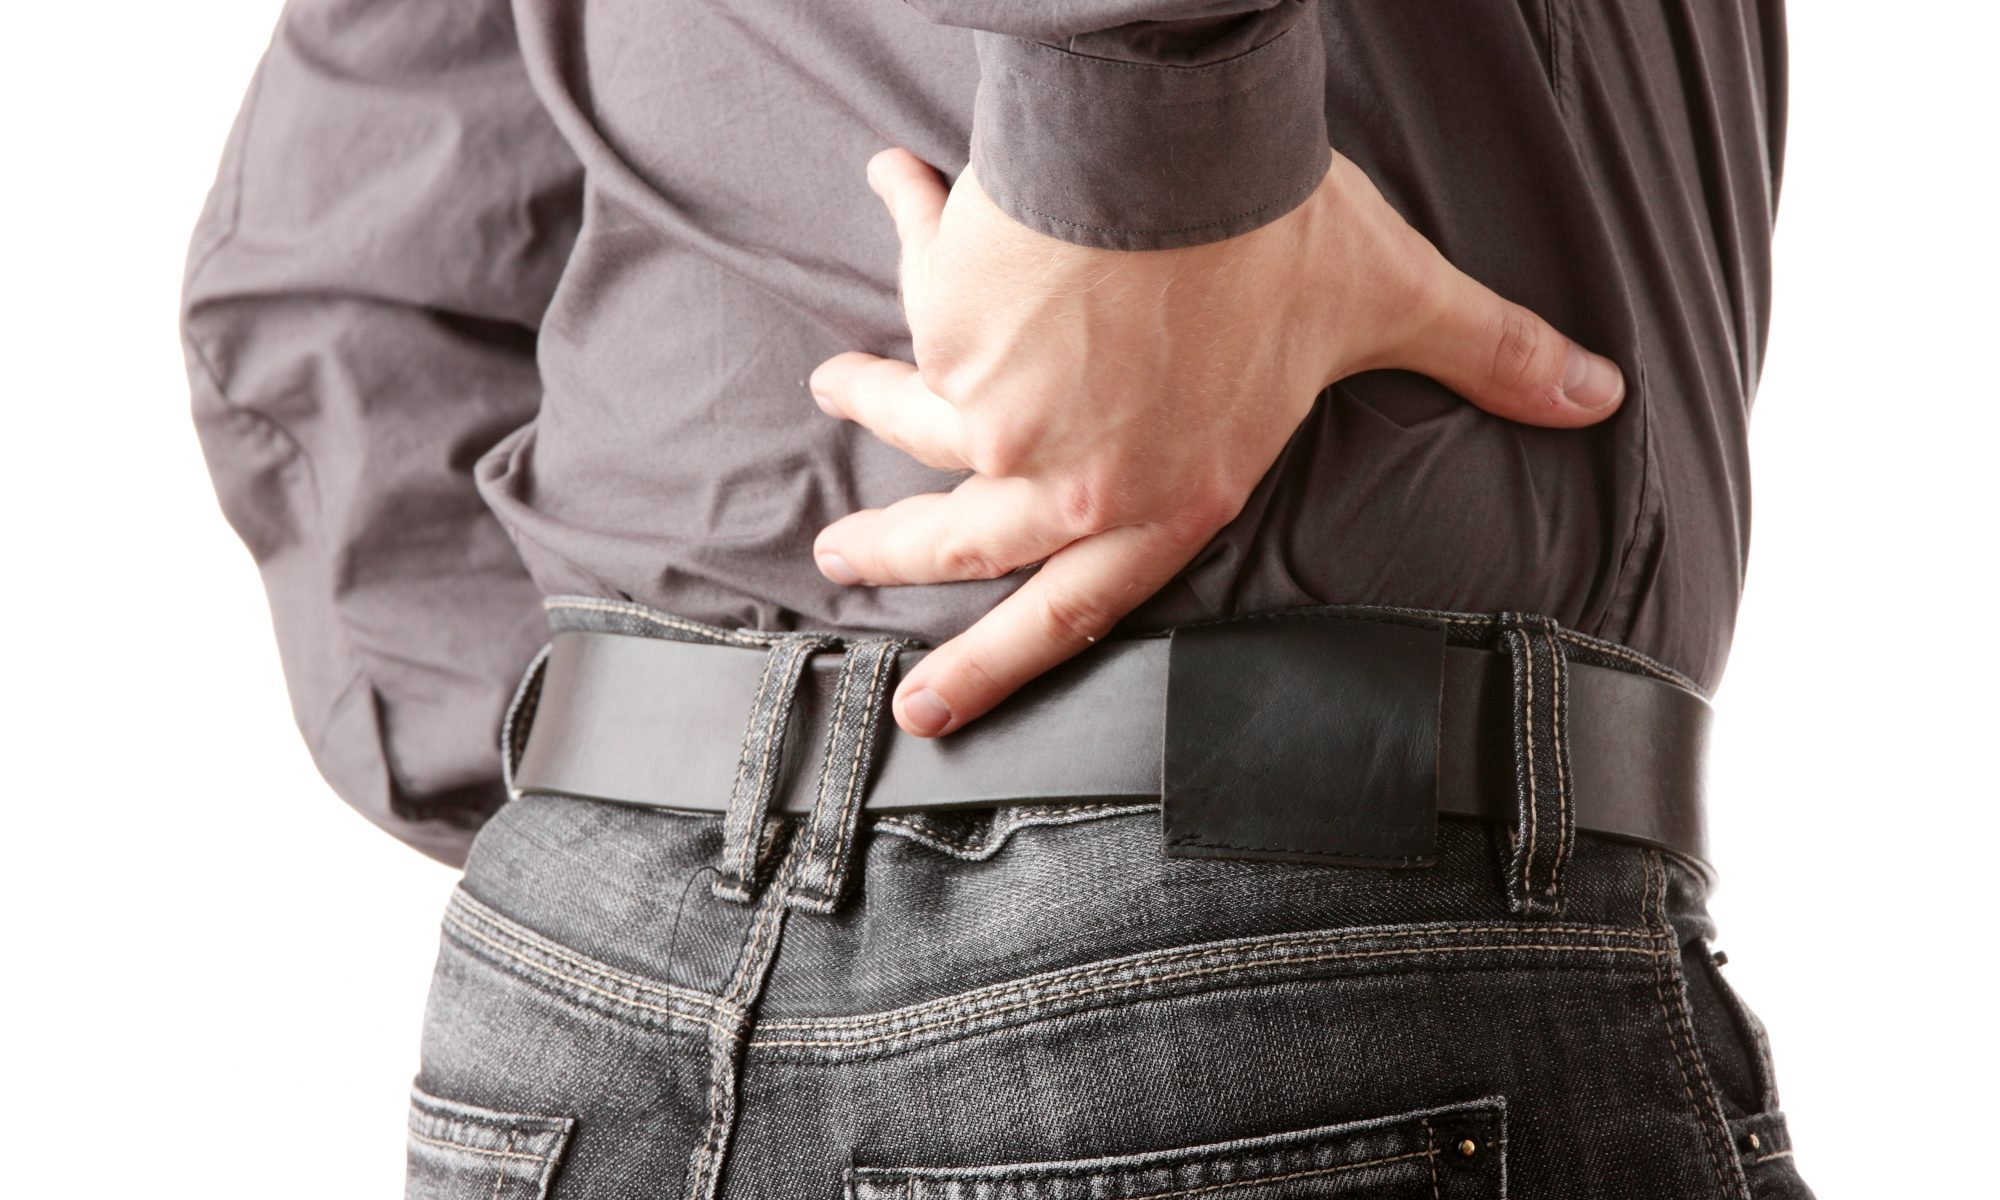 A man with pain shooting up his back. (Zoonar/Thinkstock)